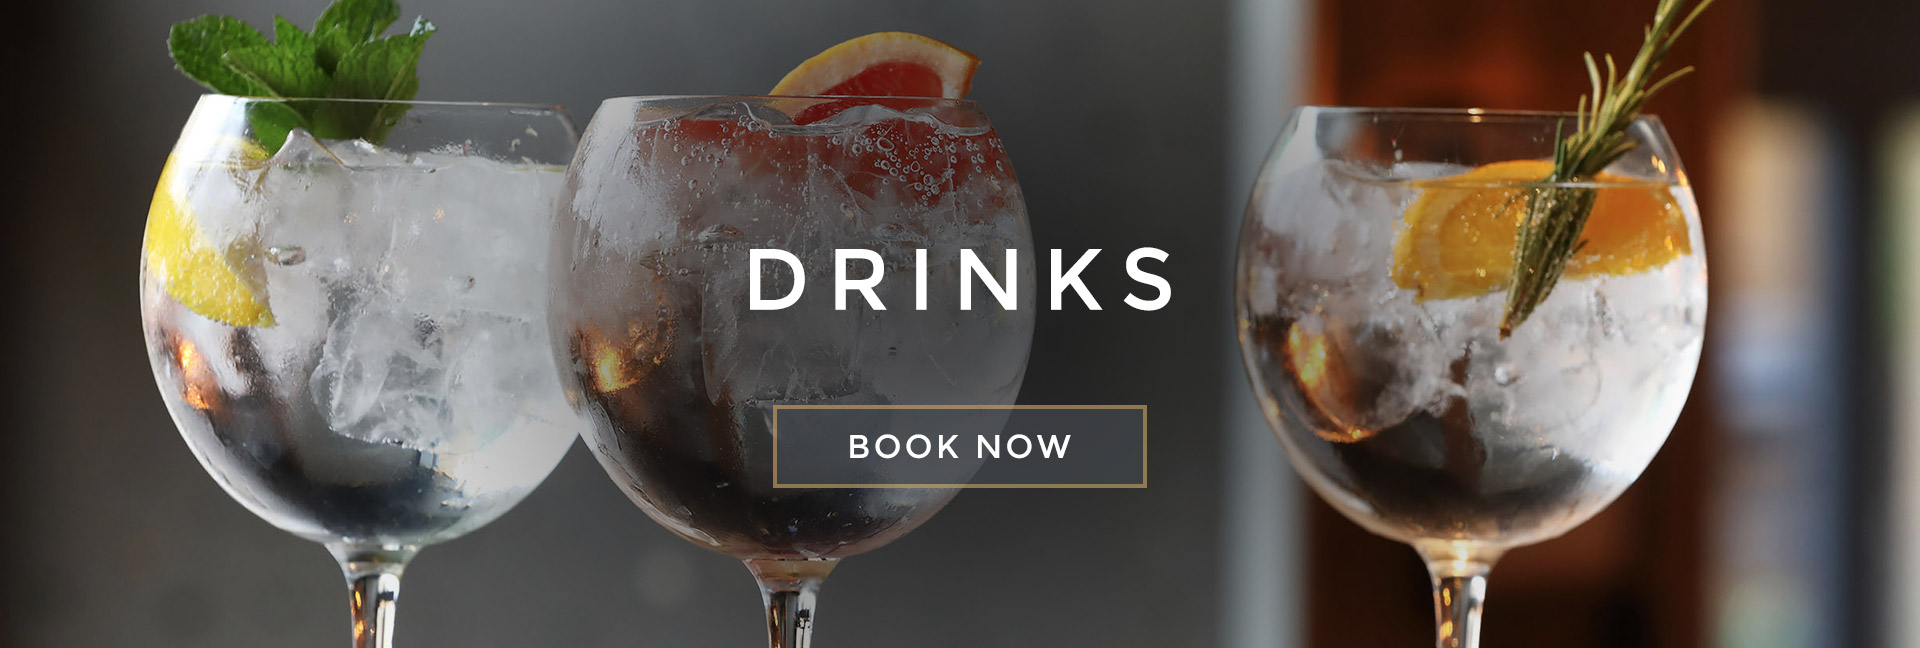 Drinks at All Bar One Byward Street - Book your table